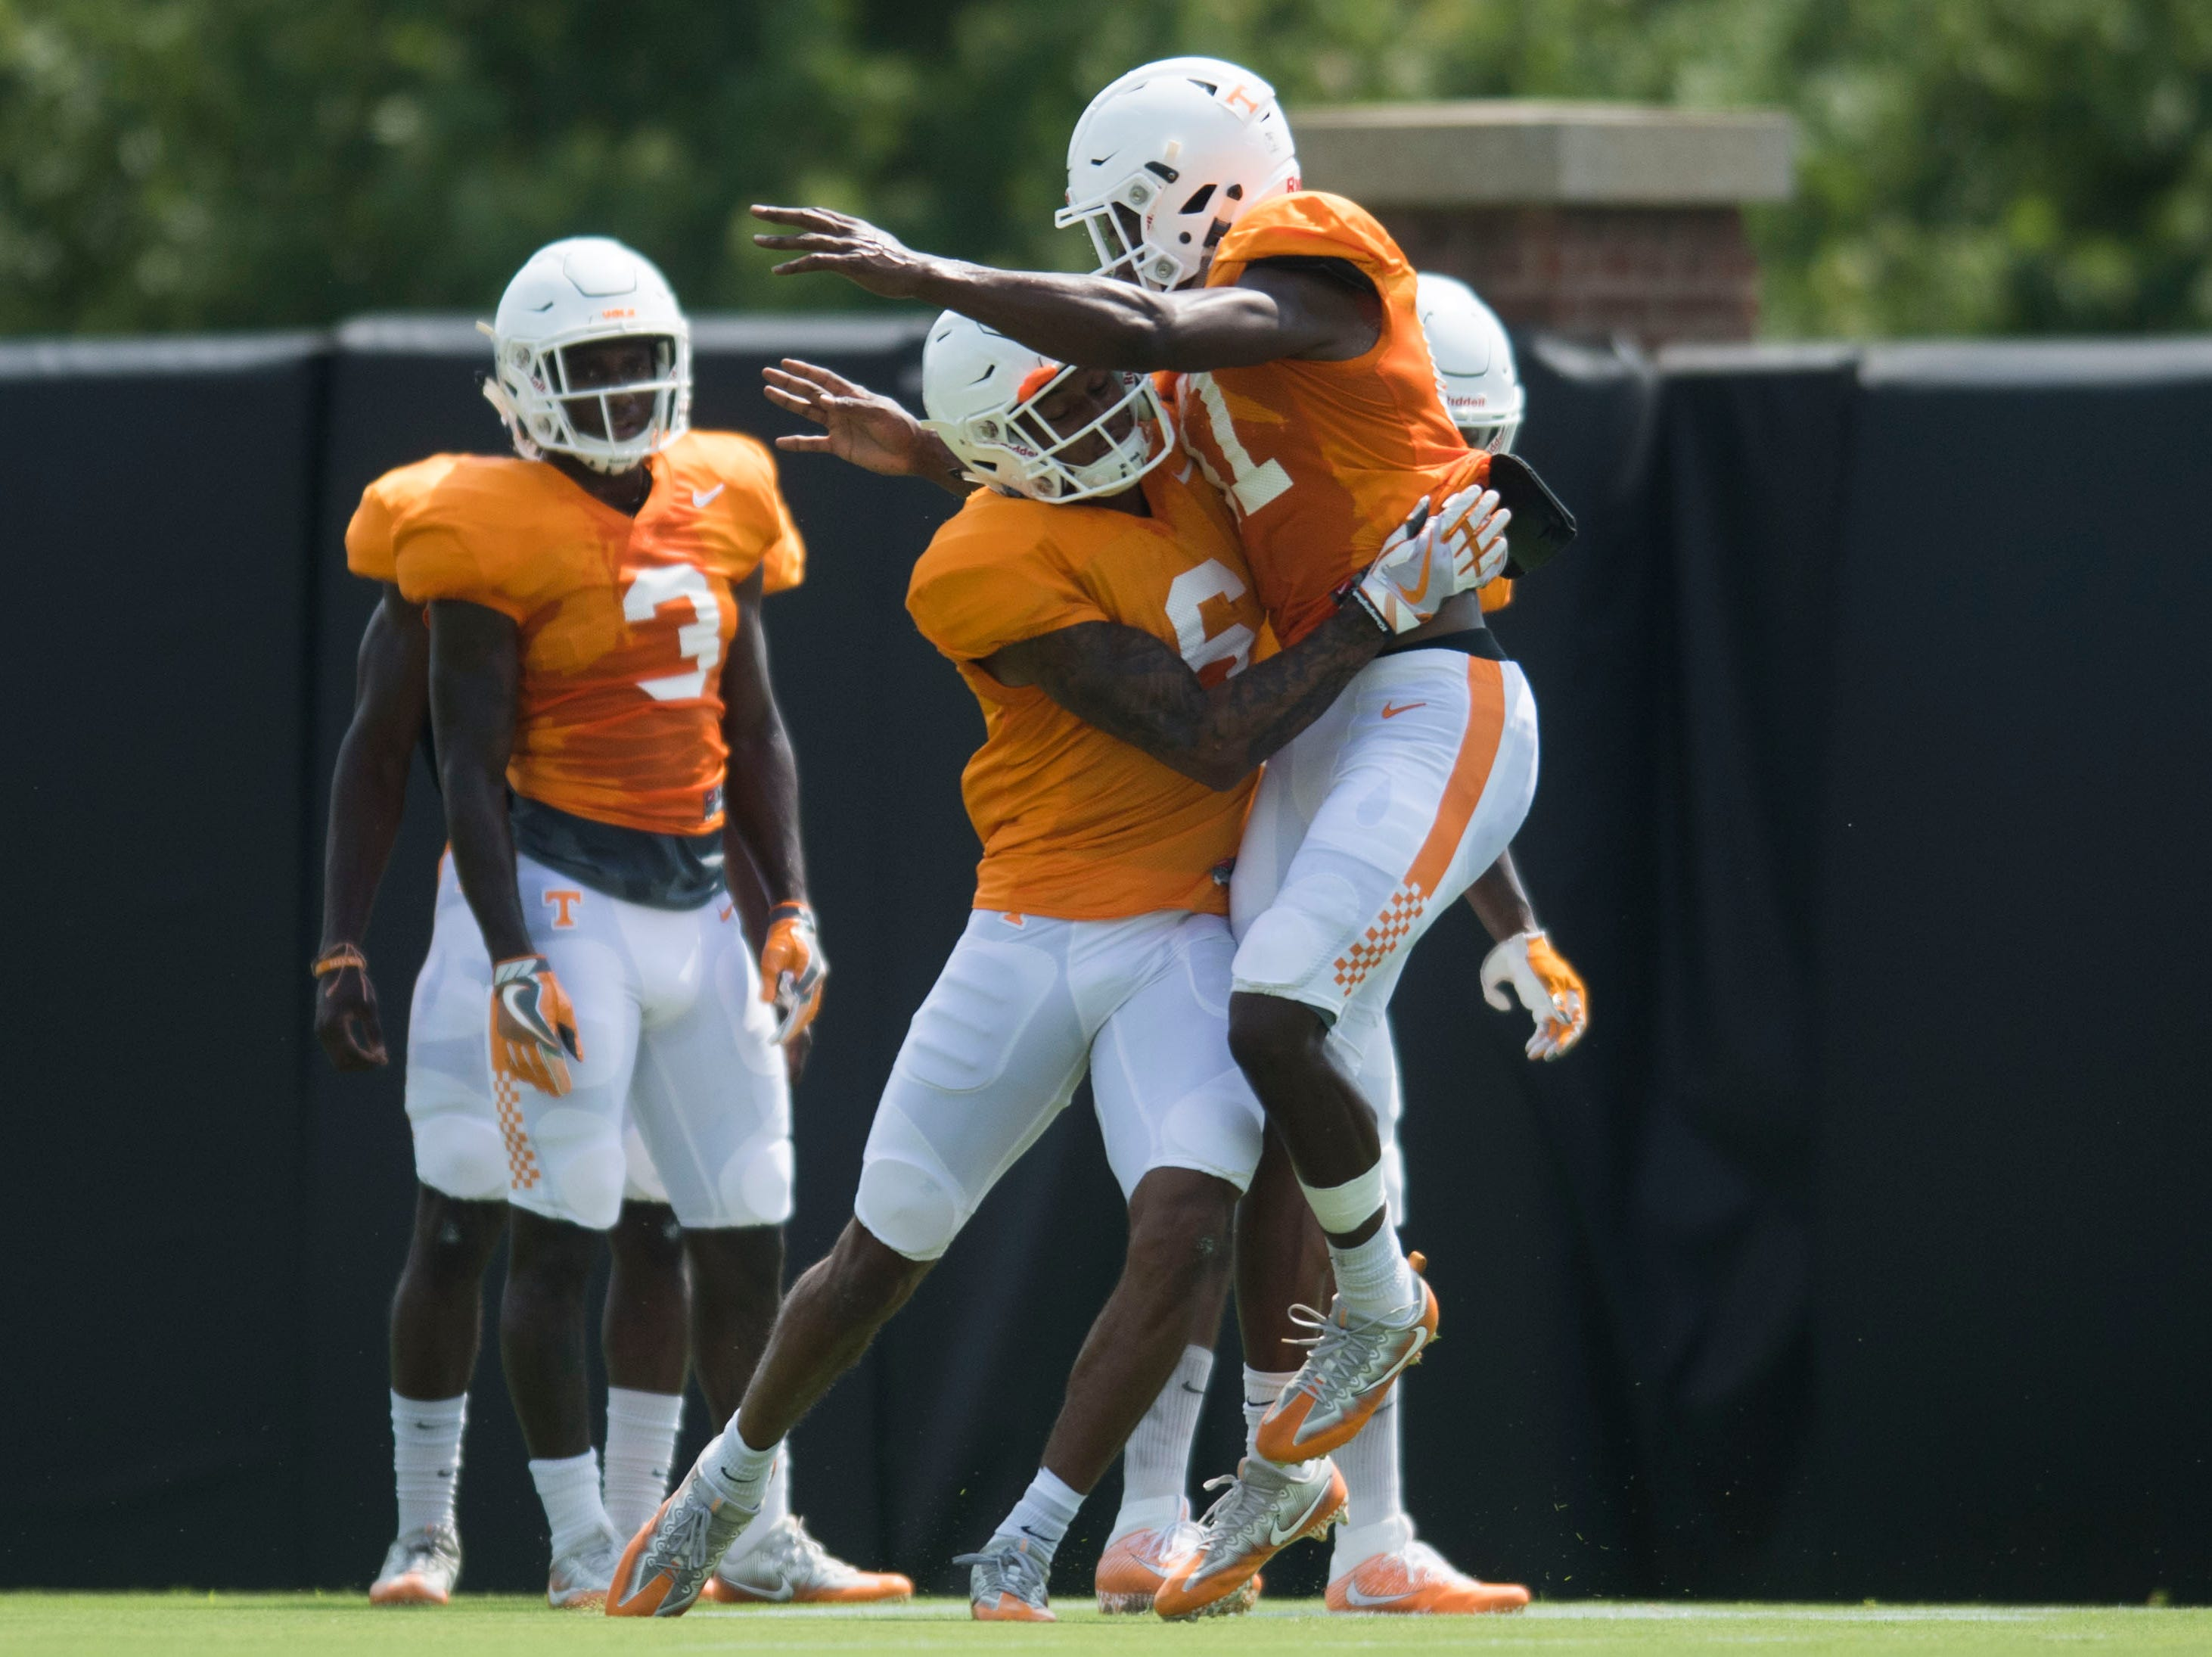 Tennessee defensive back/wide receiver Alontae Taylor (6) and Tennessee defensive back Kenneth George Jr. (41) participate in a  drill at preseason Vols football practice Tuesday, Aug. 14, 2018.